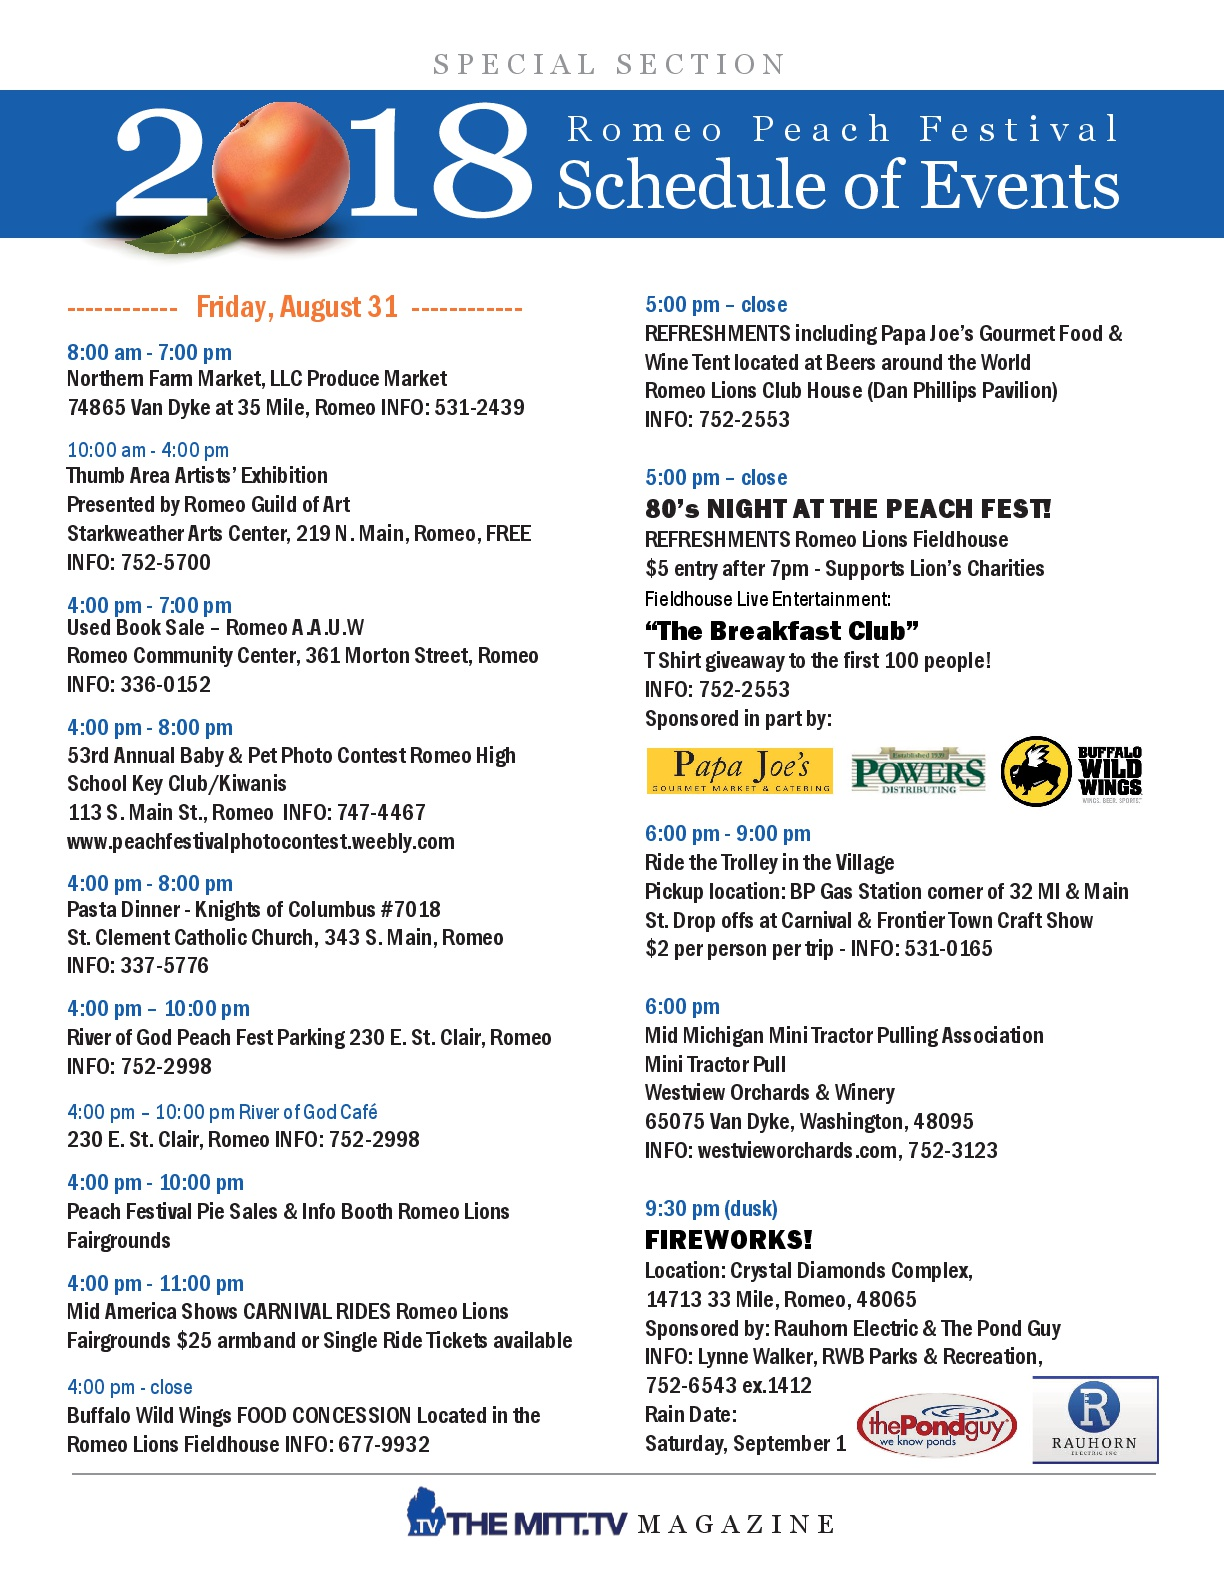 Schedule-of-Events-Pages.final-002.jpg